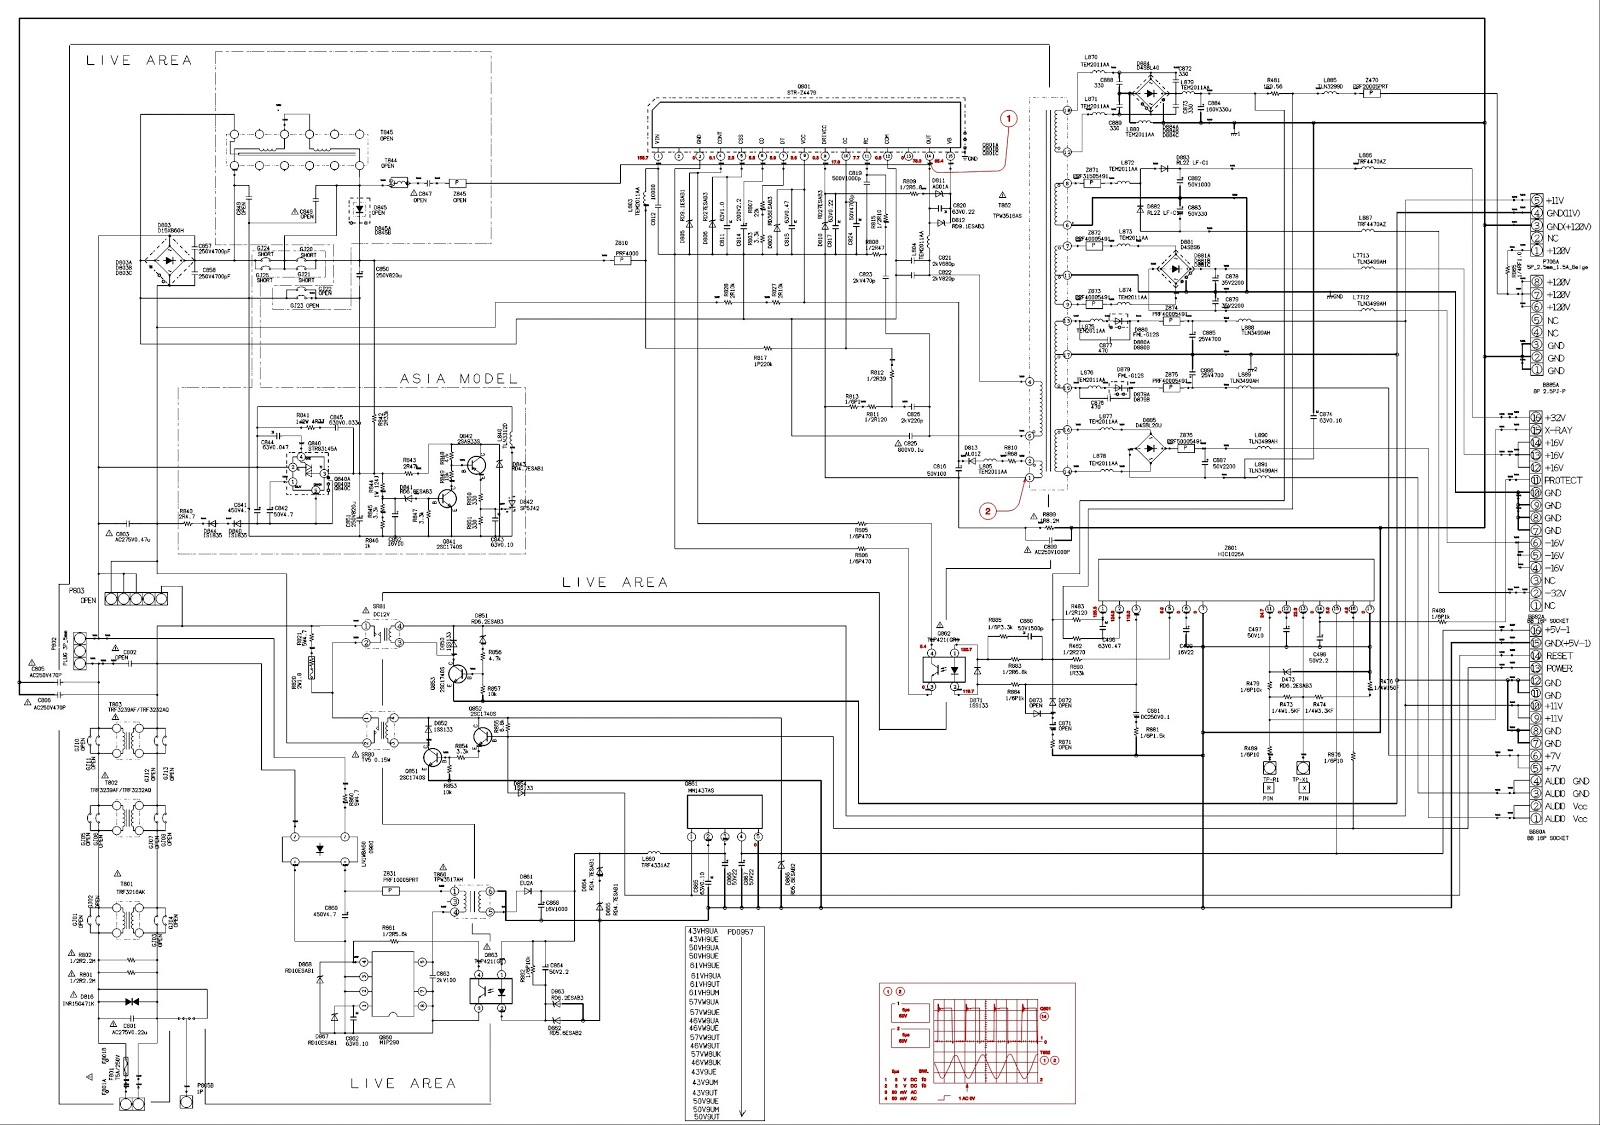 power%2B %2Bsmps toshiba 50 inch projection tv smps schematic electro help toshiba motor wiring diagram at creativeand.co